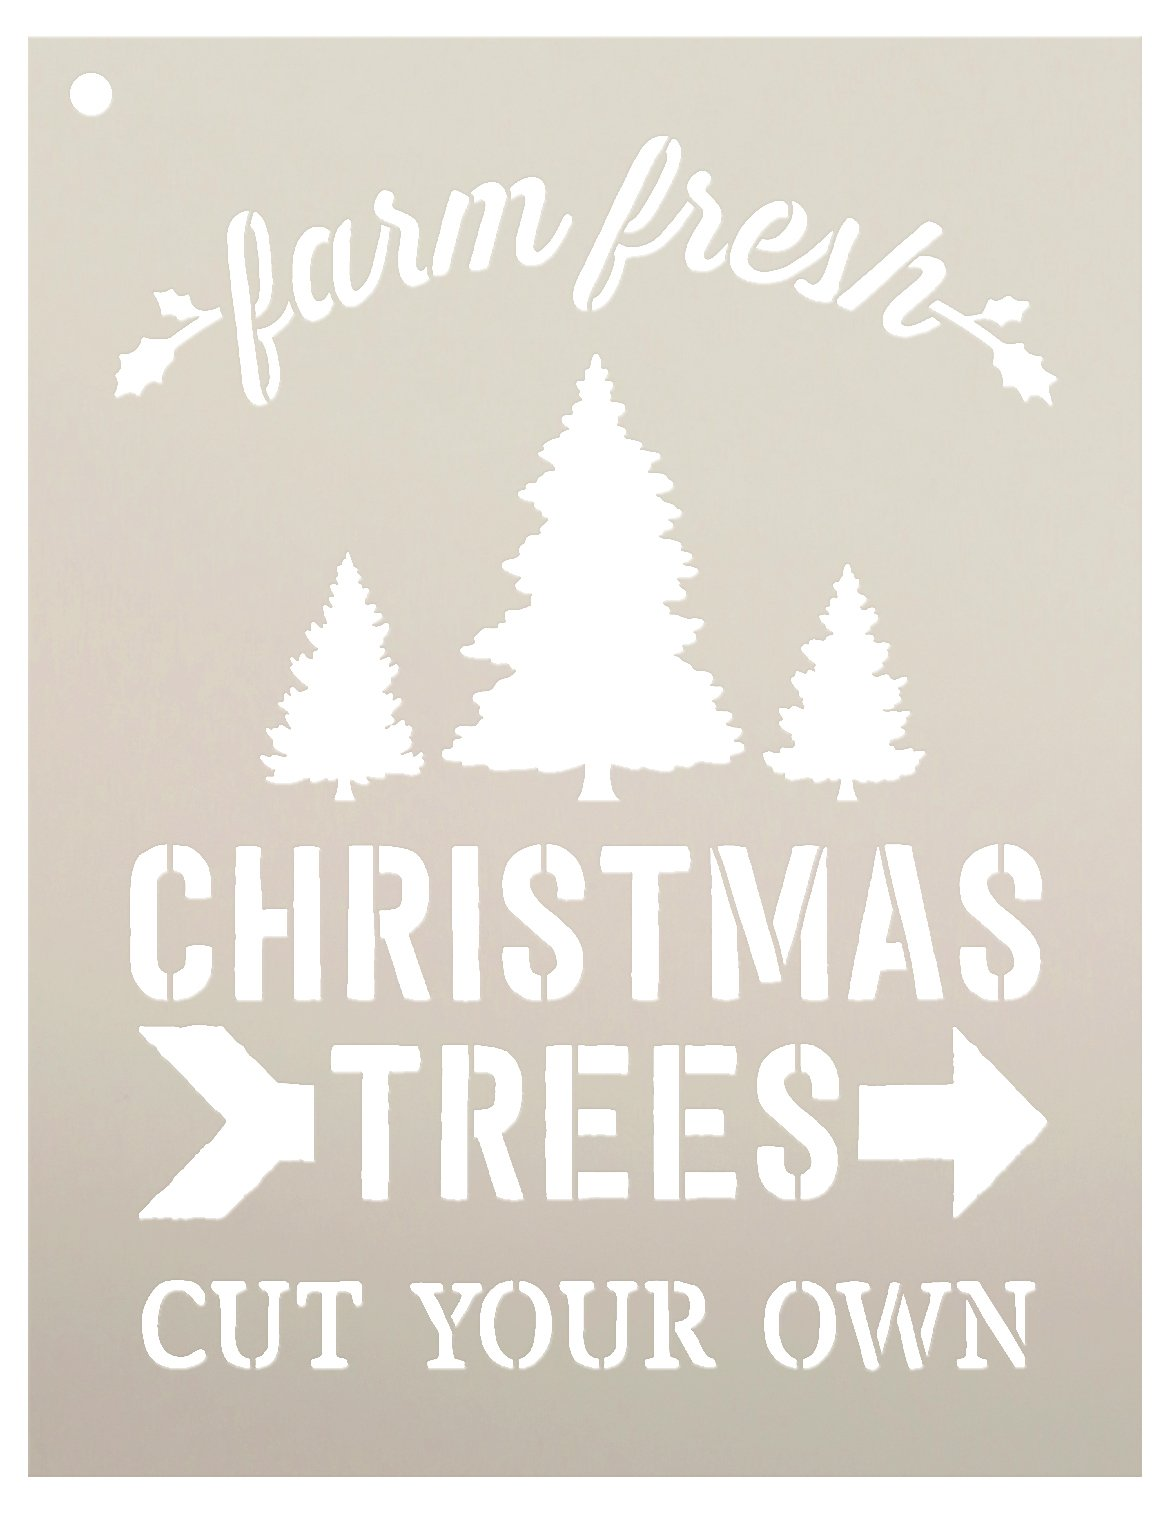 Farm Fresh Christmas Trees by StudioR12 | Winter Farm Word Stencil - Reusable Mylar Template | Painting, Chalk, Mixed Media | Use for Wall Art, DIY Home Decor - CHOOSE SIZE (9'' x 11'')